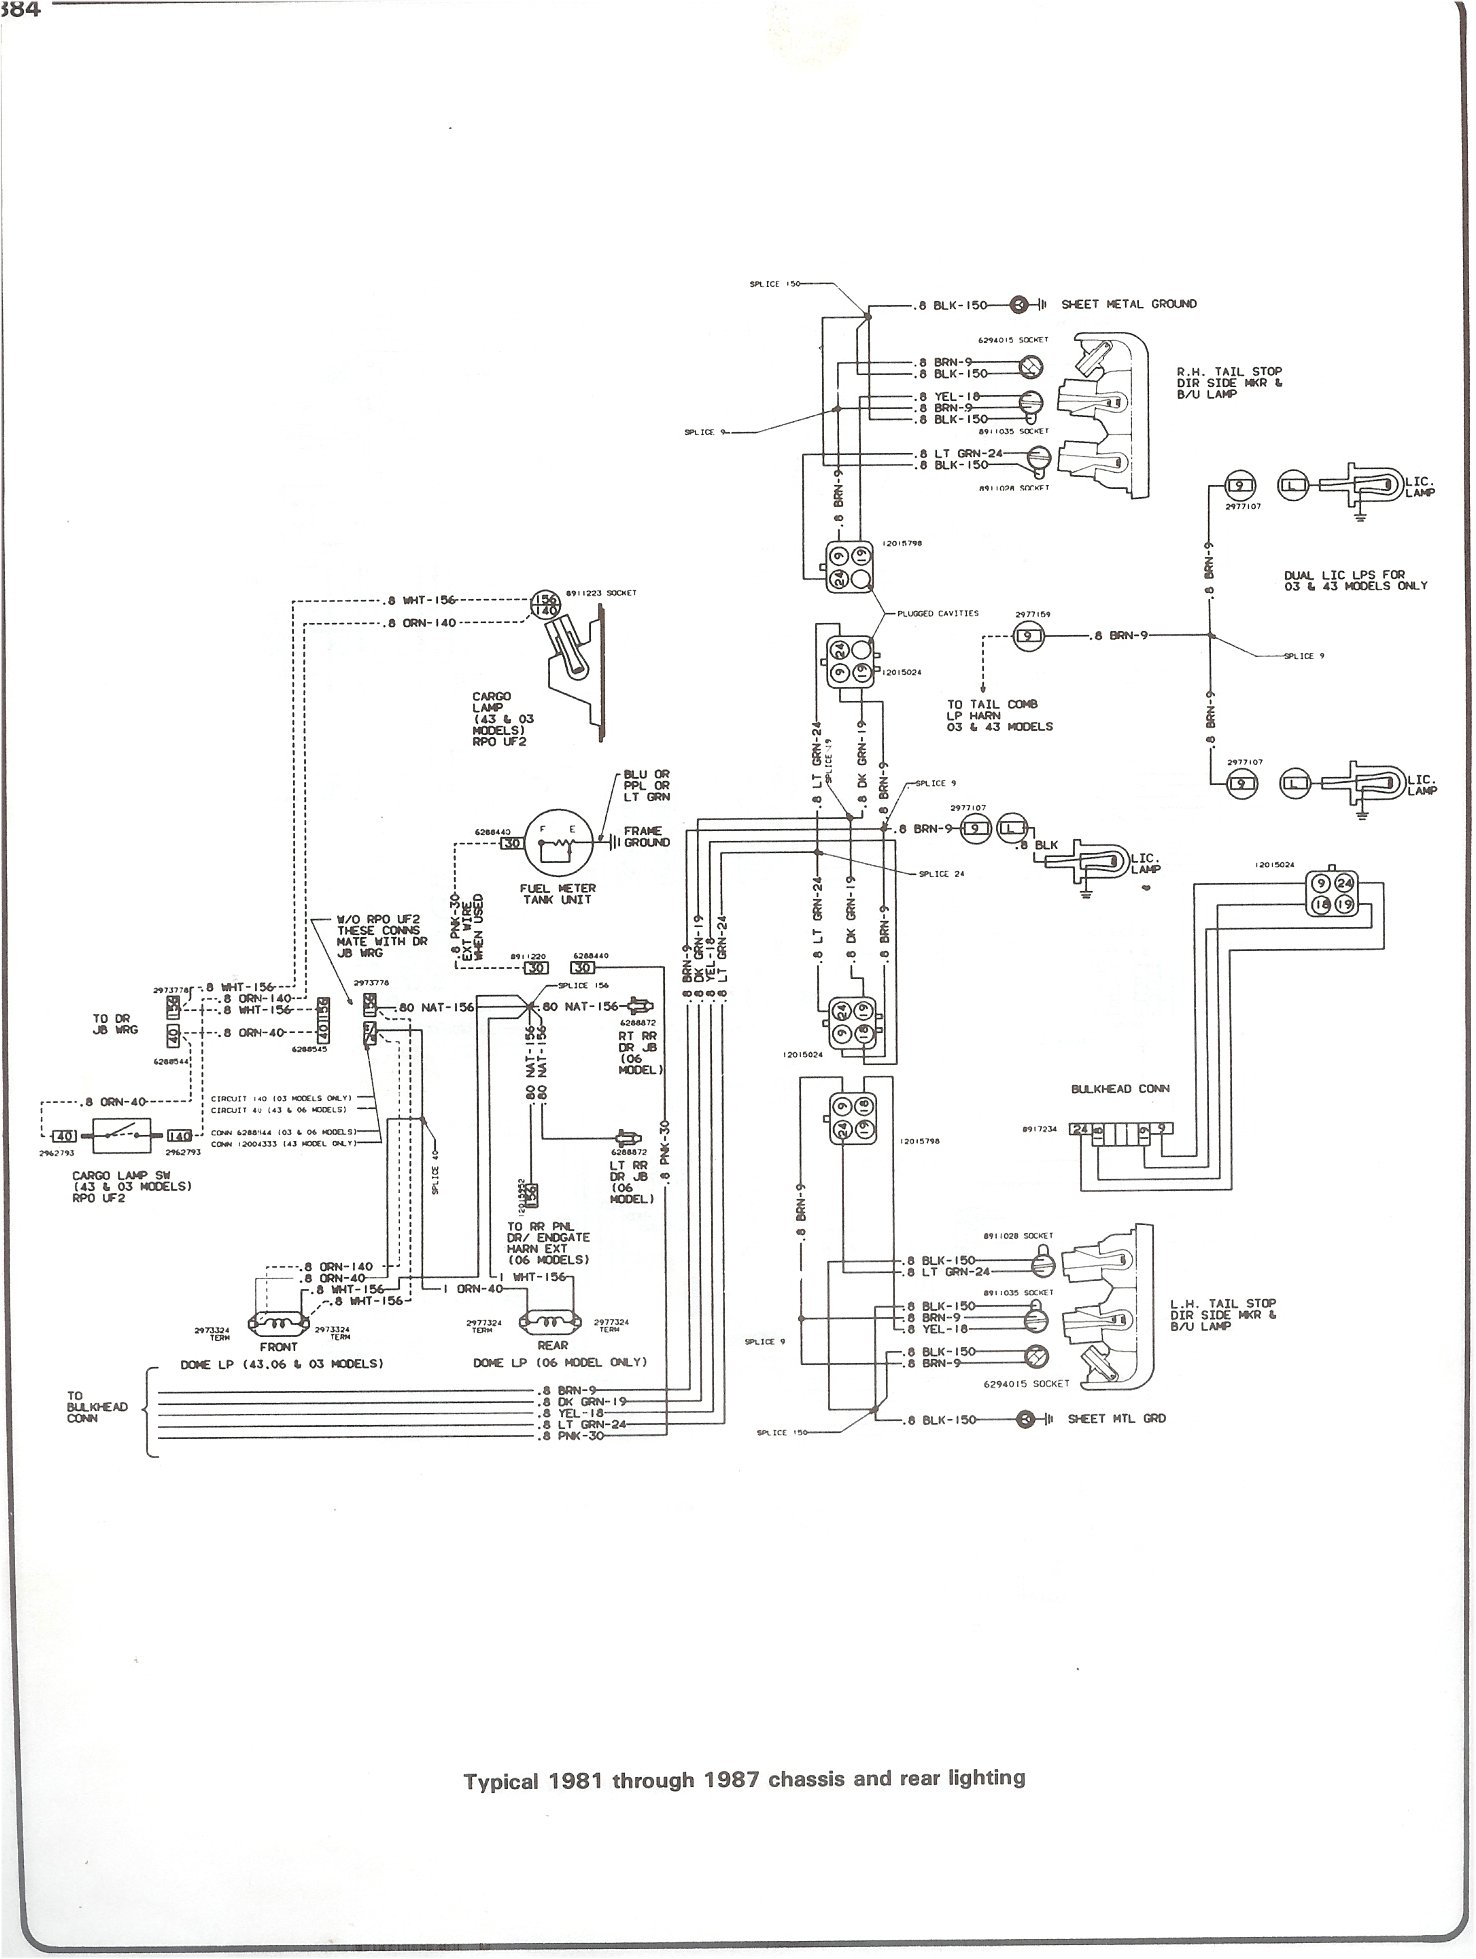 chevy p30 wiring diagram complete 73 87 wiring diagrams 81 87 i6 engine compartment · 81 87 v8 engine